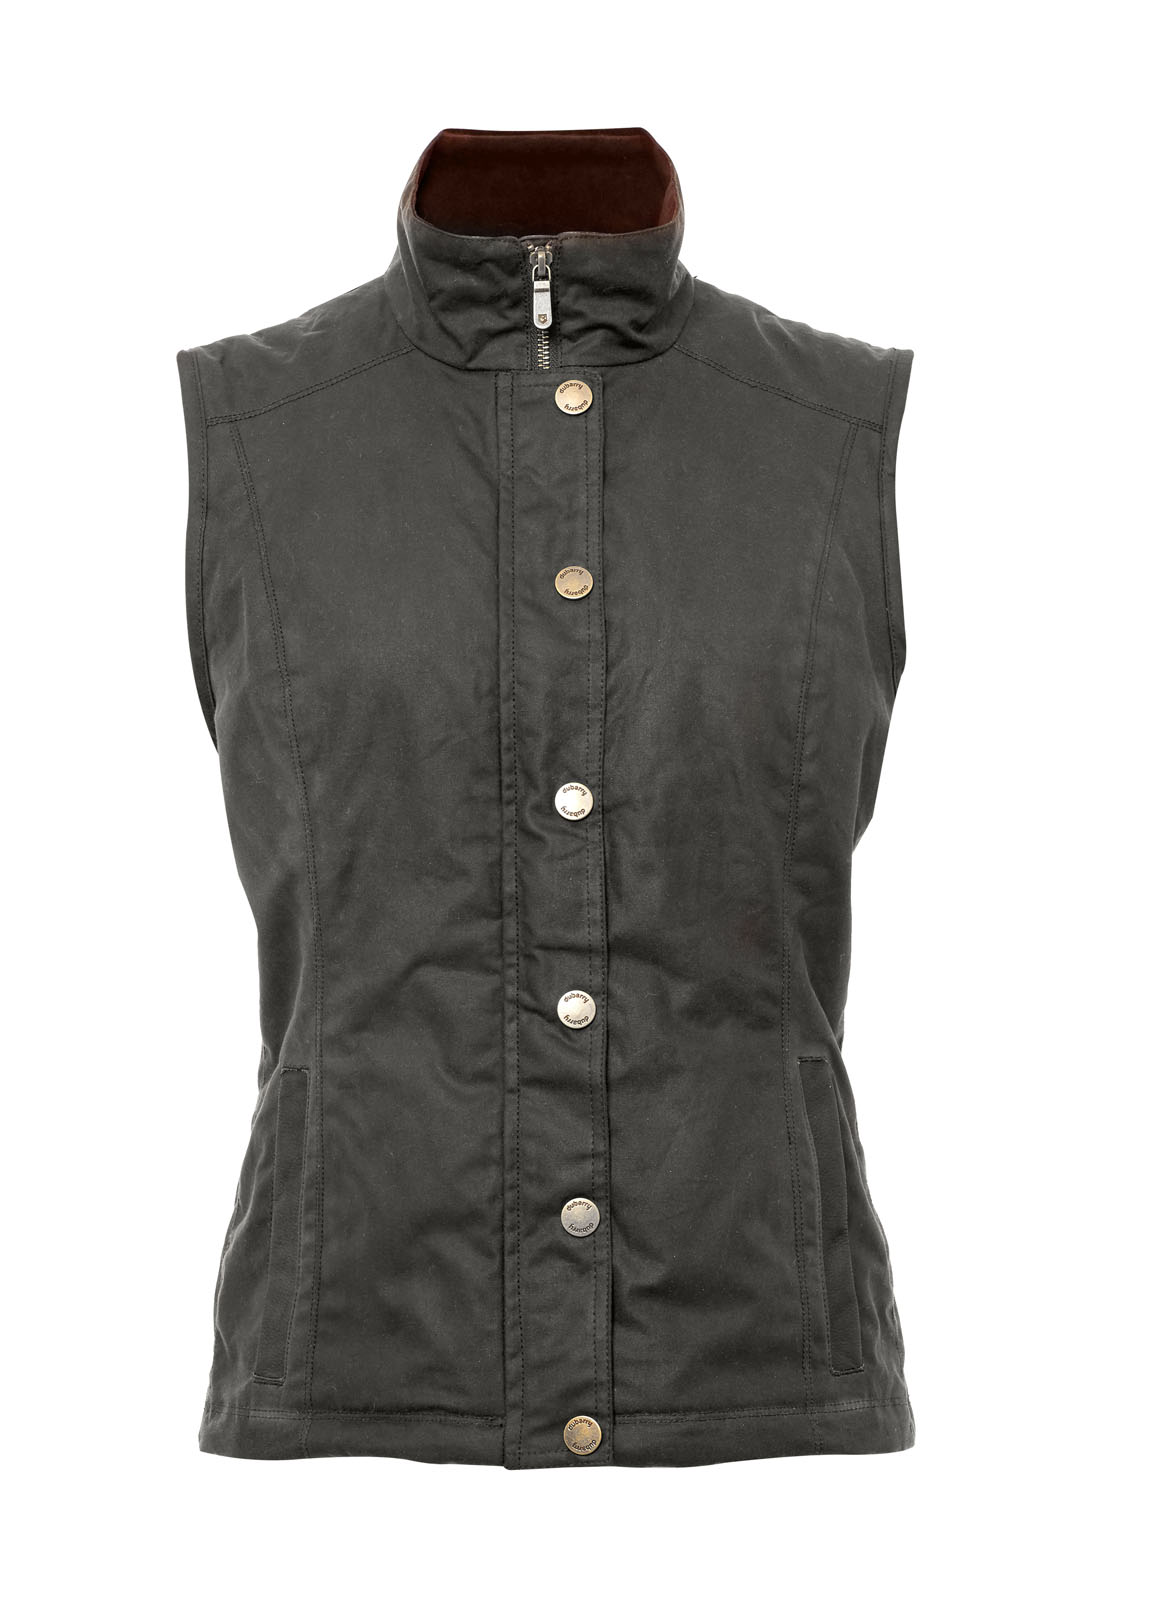 Oranmore Waxed Gilet - Olive